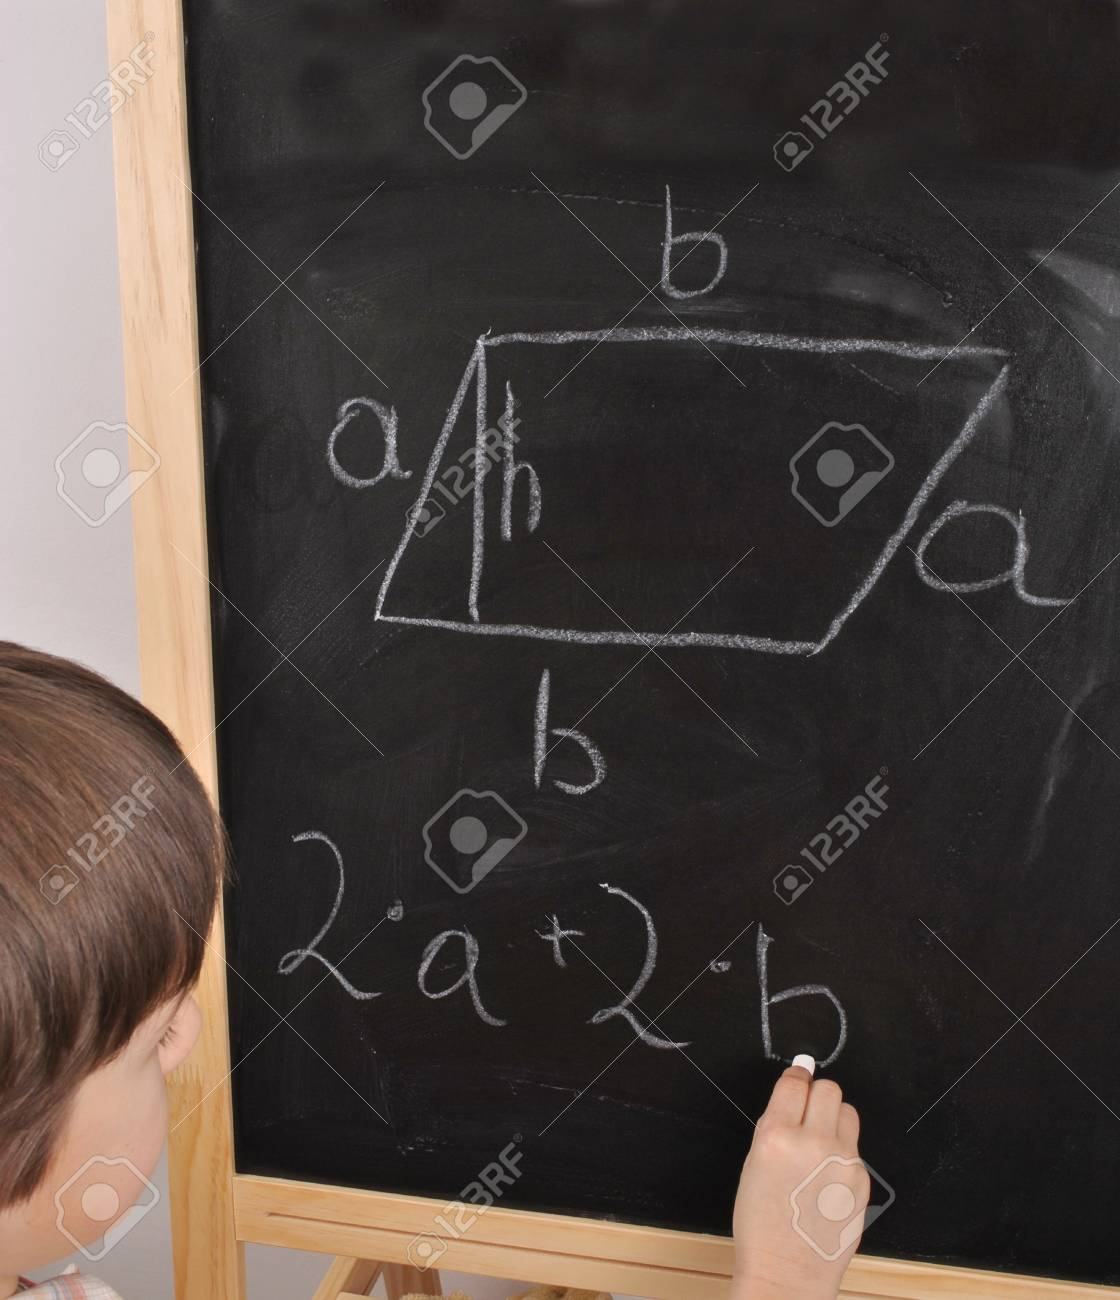 Parallelogram-student by the blackboard Stock Photo - 13485163